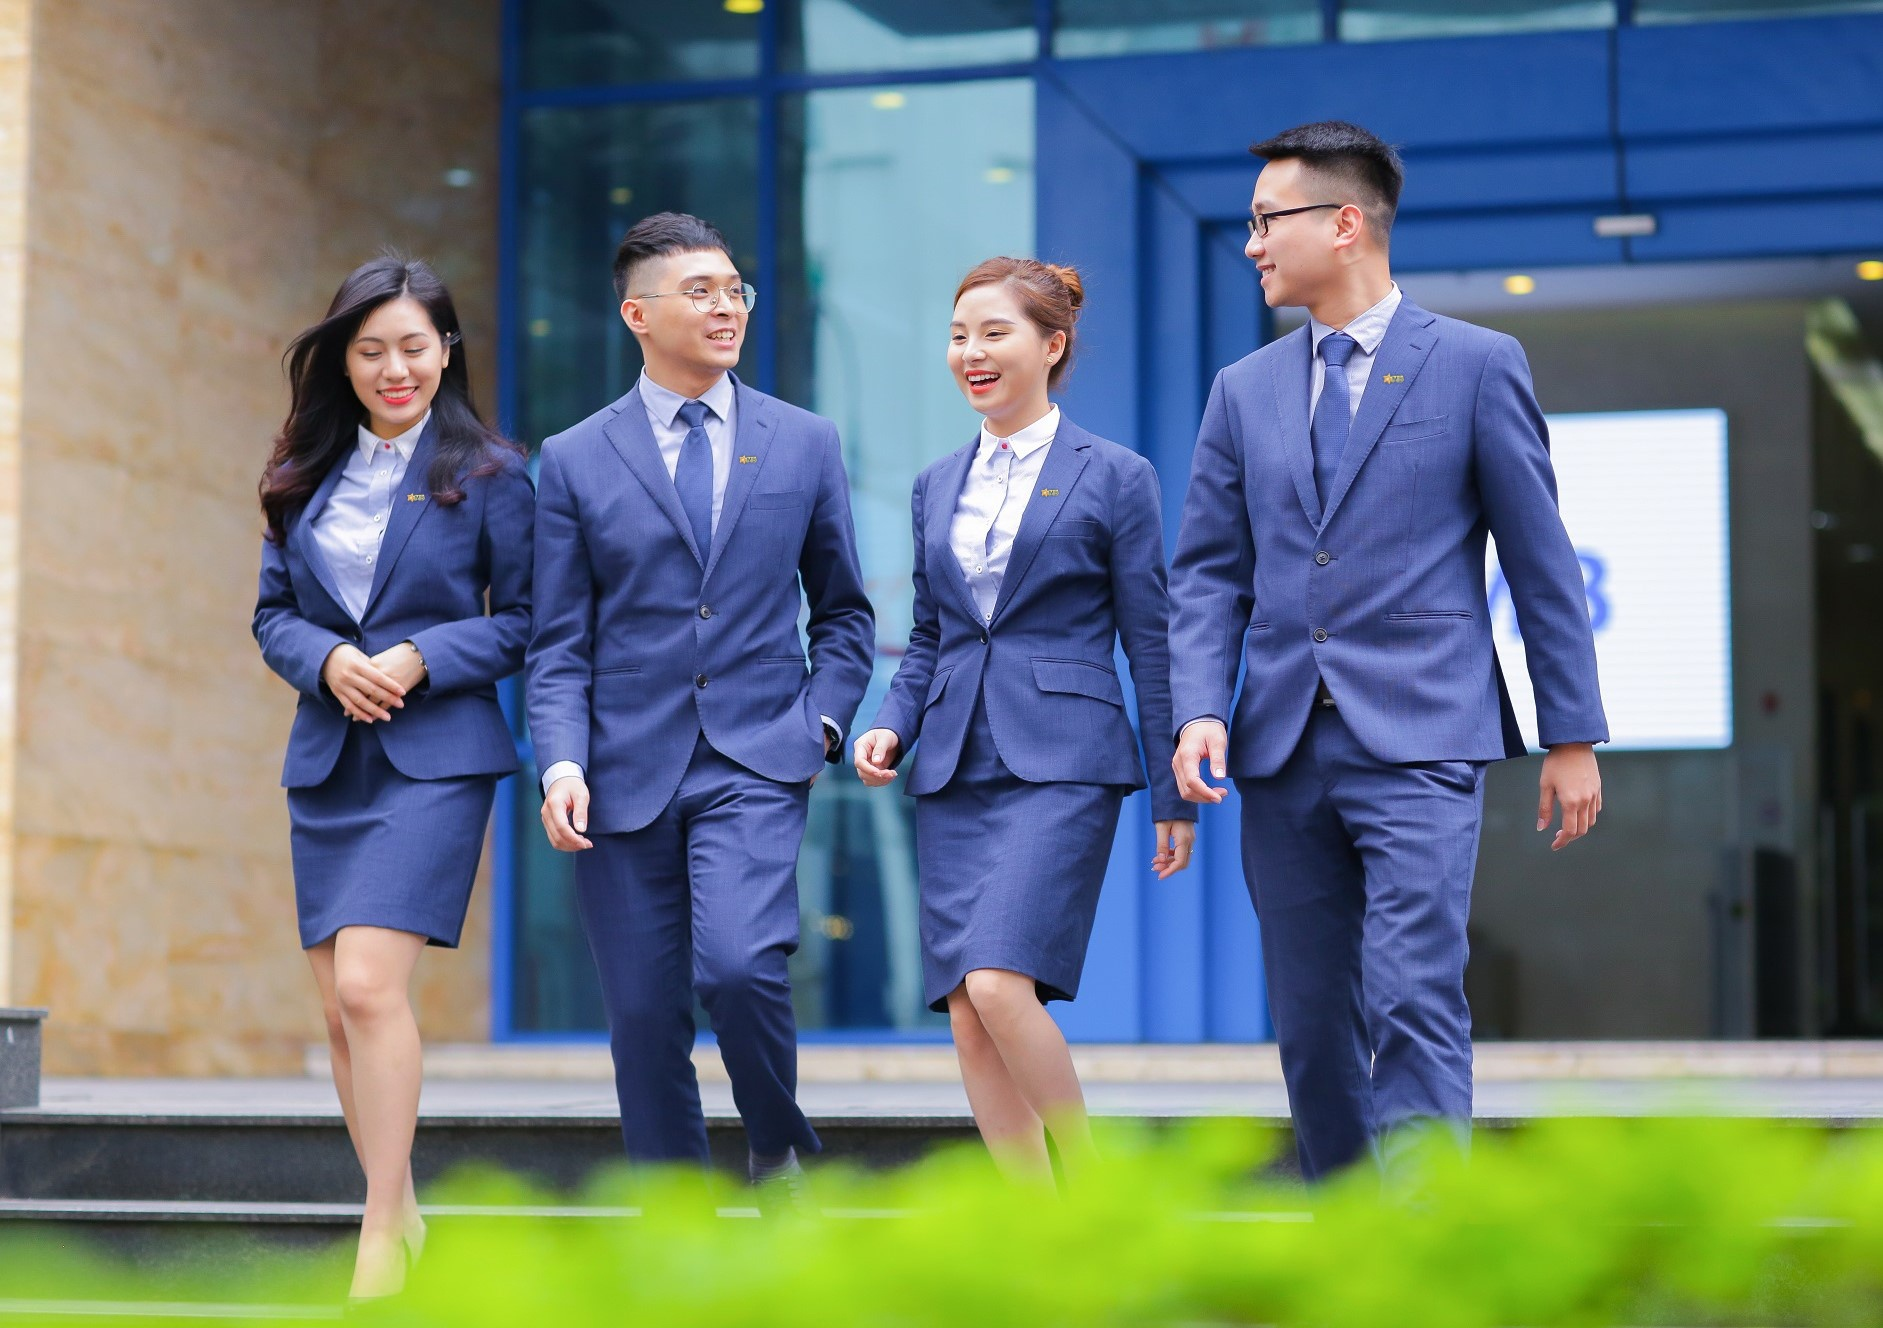 MB named among Best Companies to Work for in Asia 2021 by HR Asia